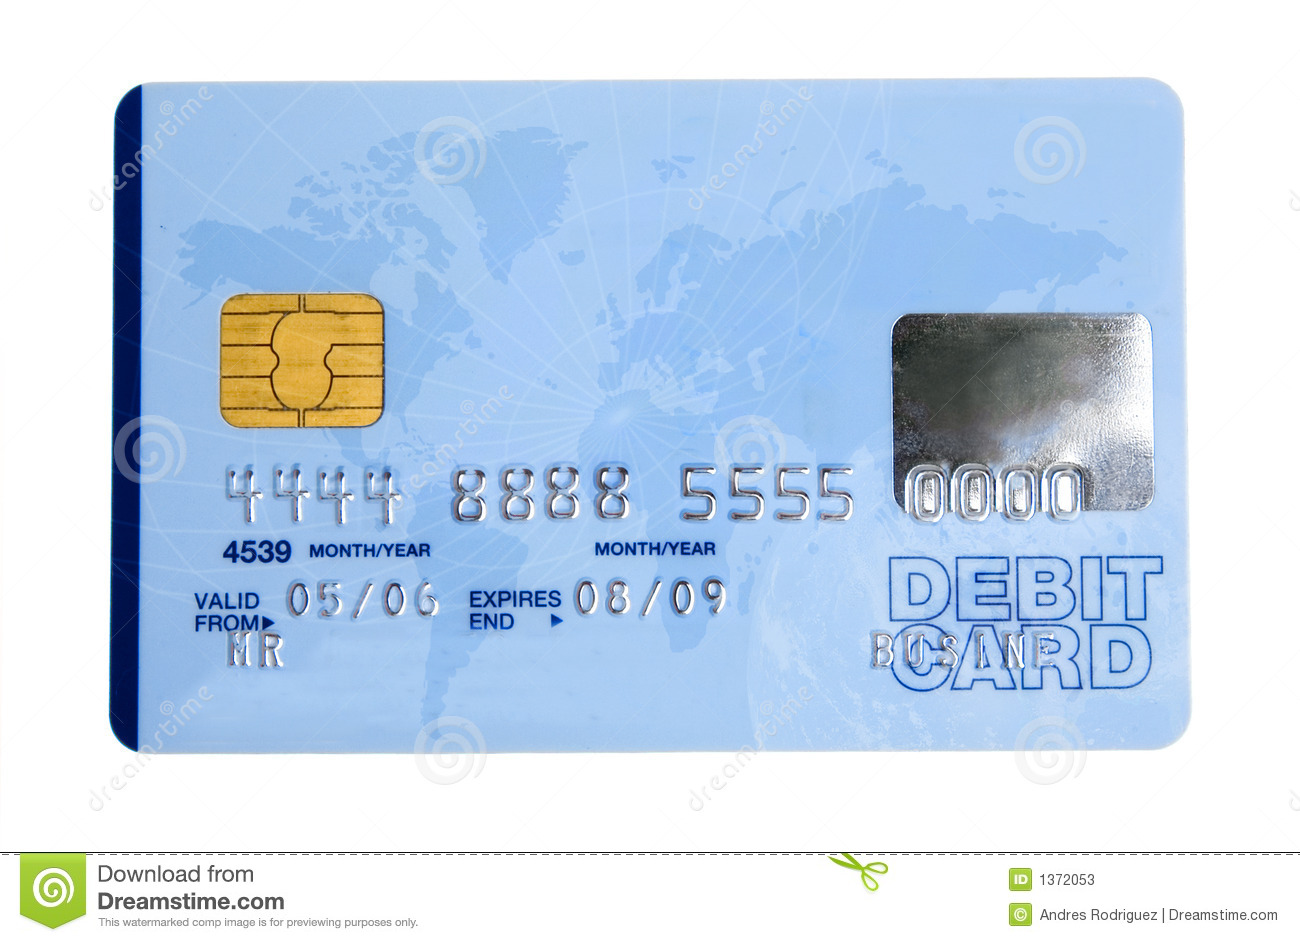 how to look up credit card number